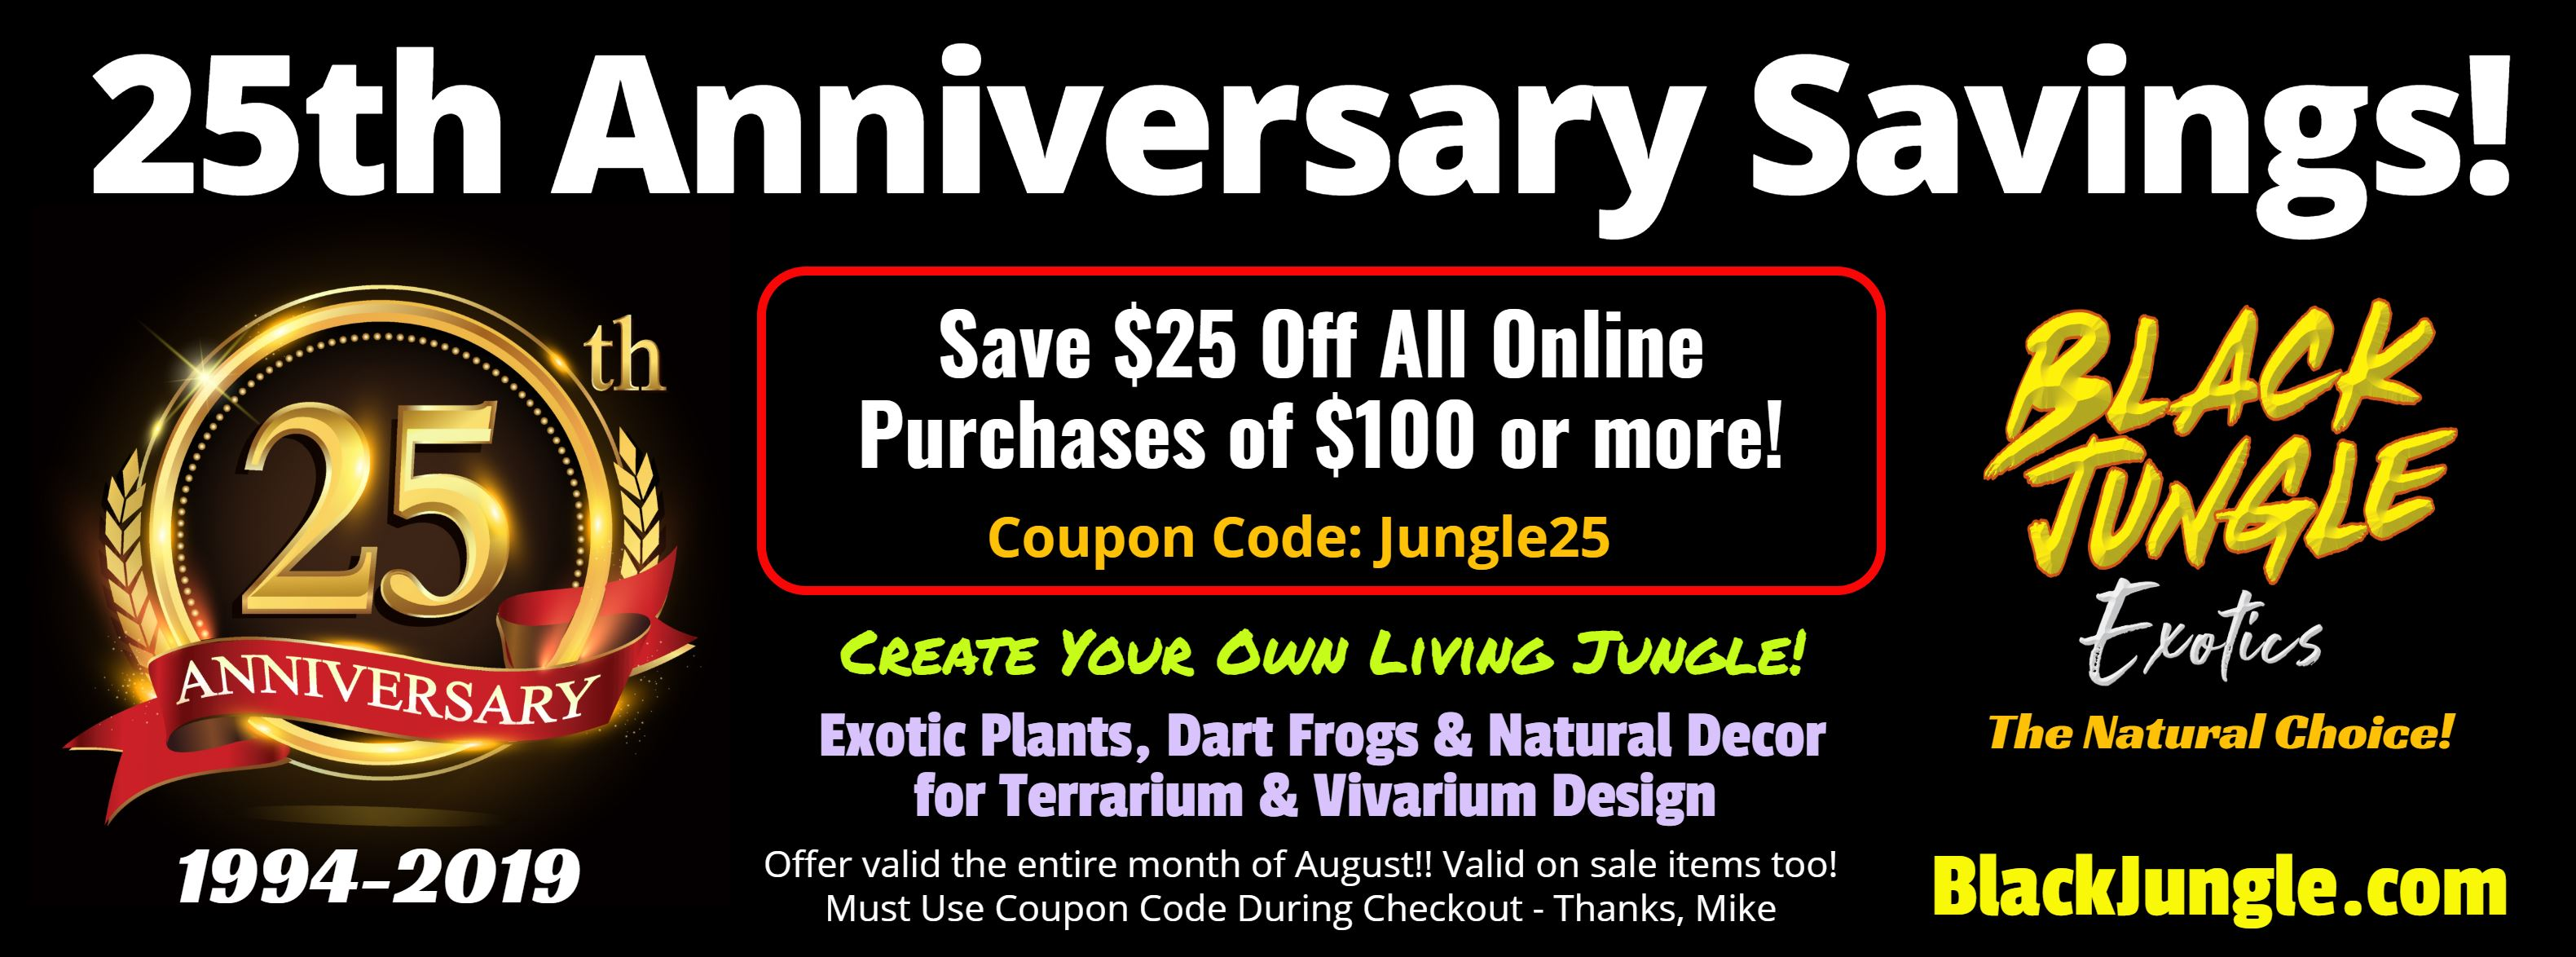 Welcome! You have discovered Black Jungle Exotics - The Natural Choice!!